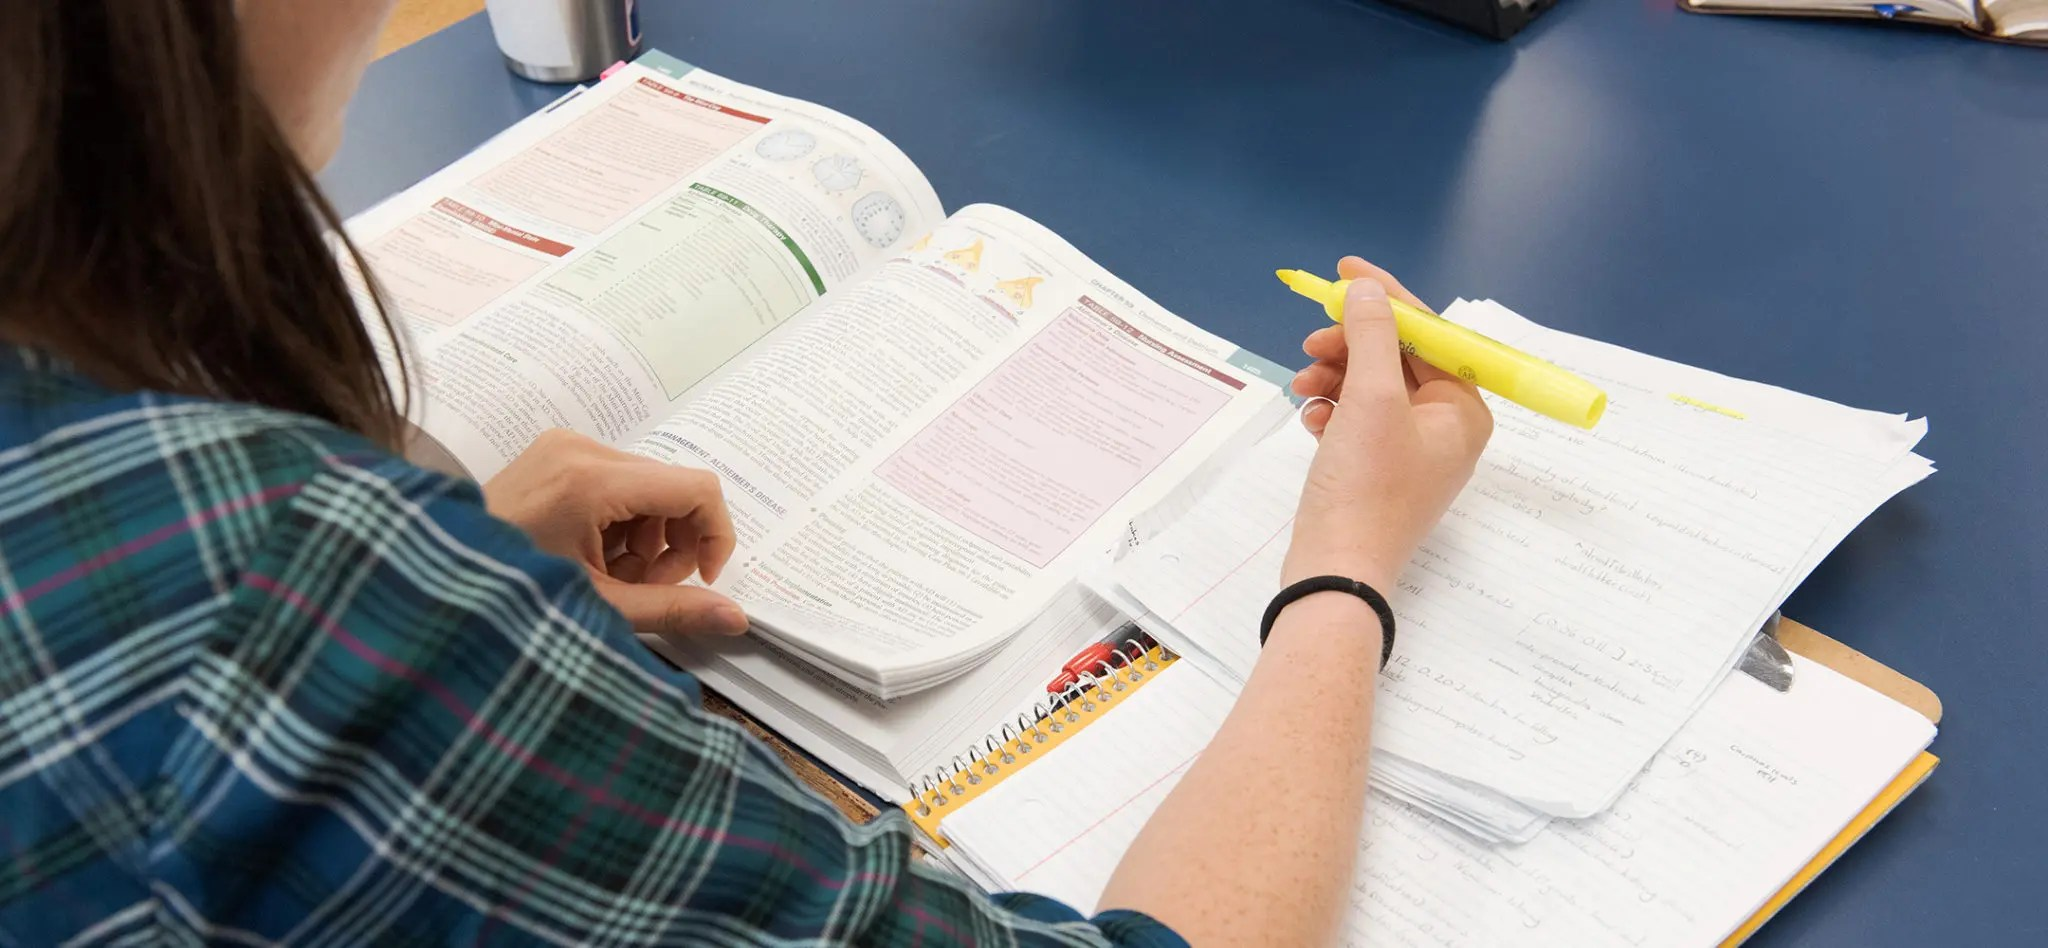 An over the shoulder view of a student looking at her book and notbook with a highlighter in her hand.